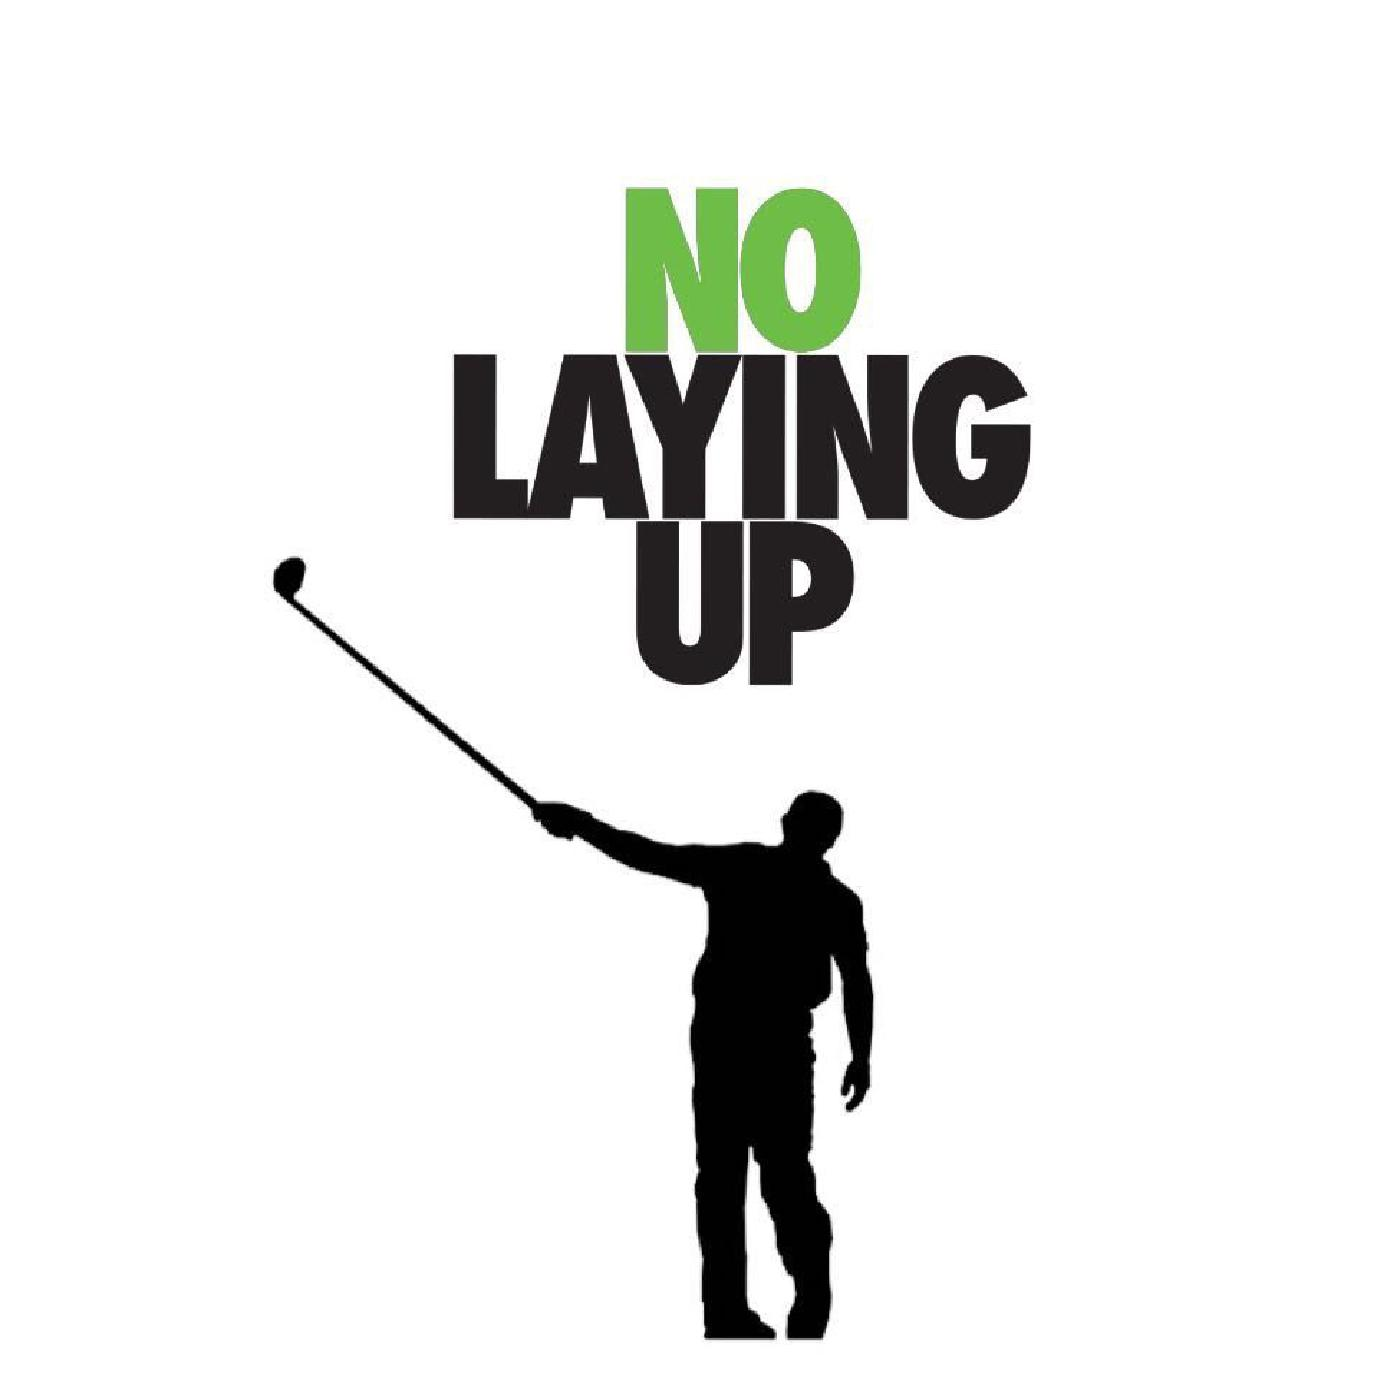 NLU Podcast, Episode 251: Ryder Cup - One Year Out